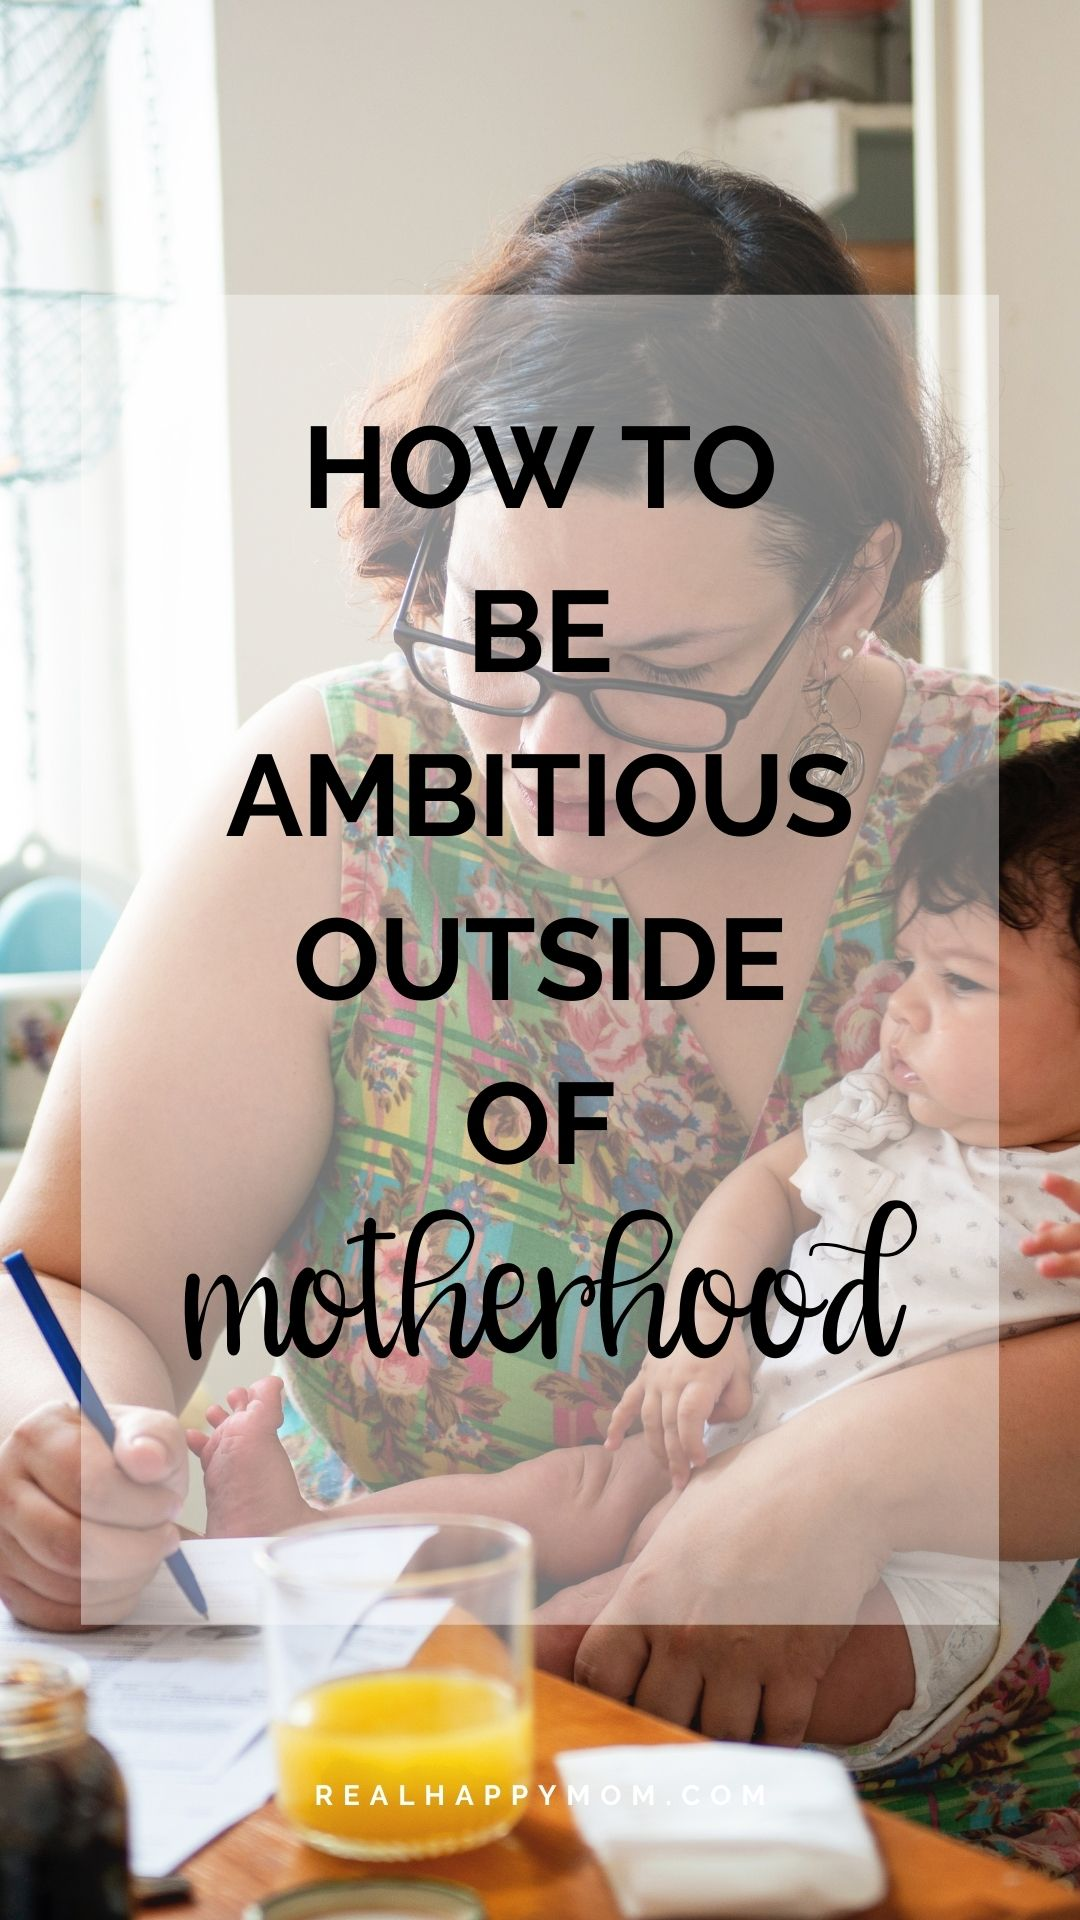 How to be ambitious outside of motherhood with